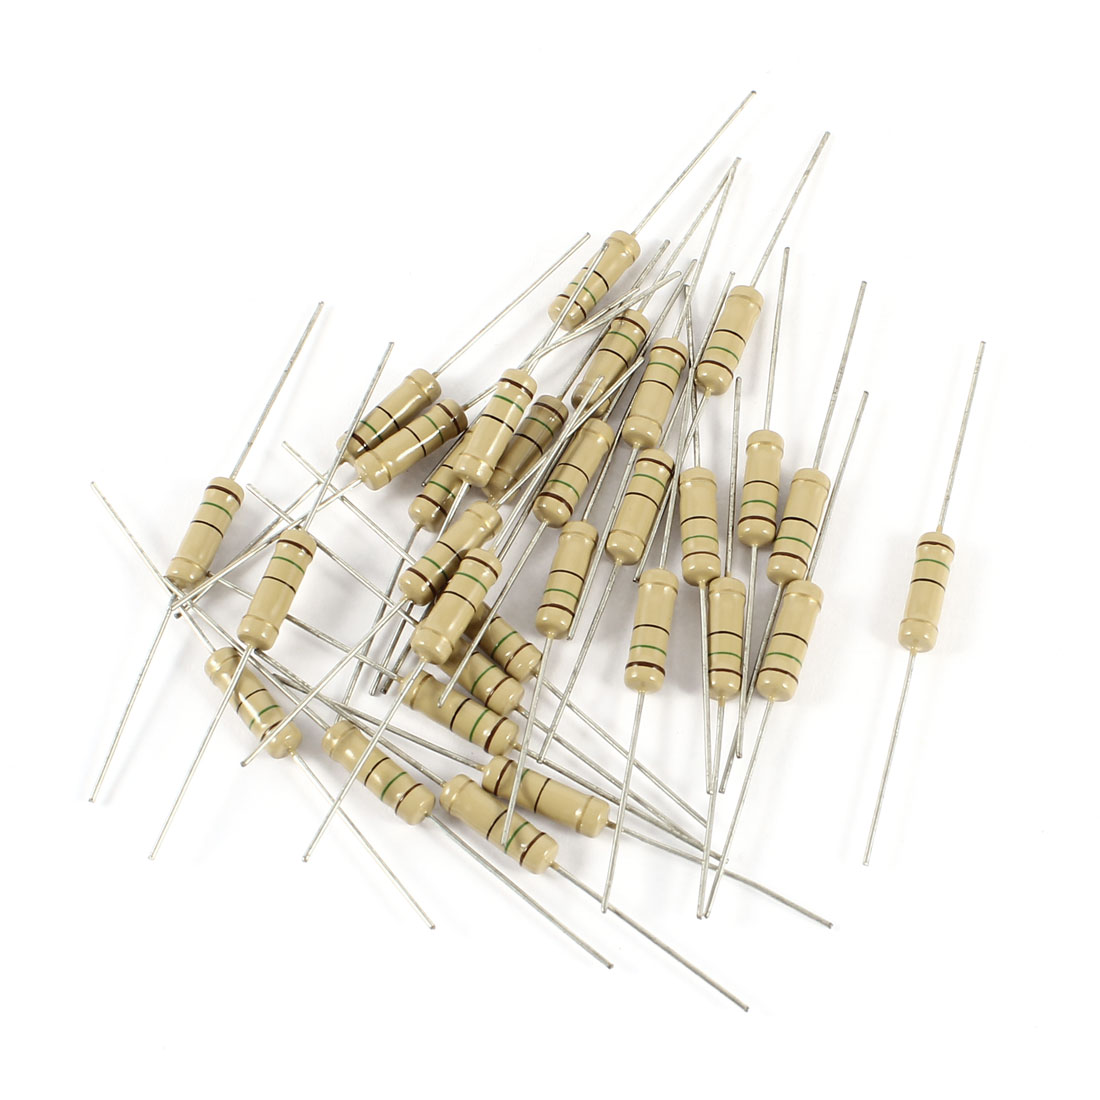 30 Pcs 2 Watt 15 Ohm 5% Tolerance Resistance Metal Oxide Film Resistor Axial Lead